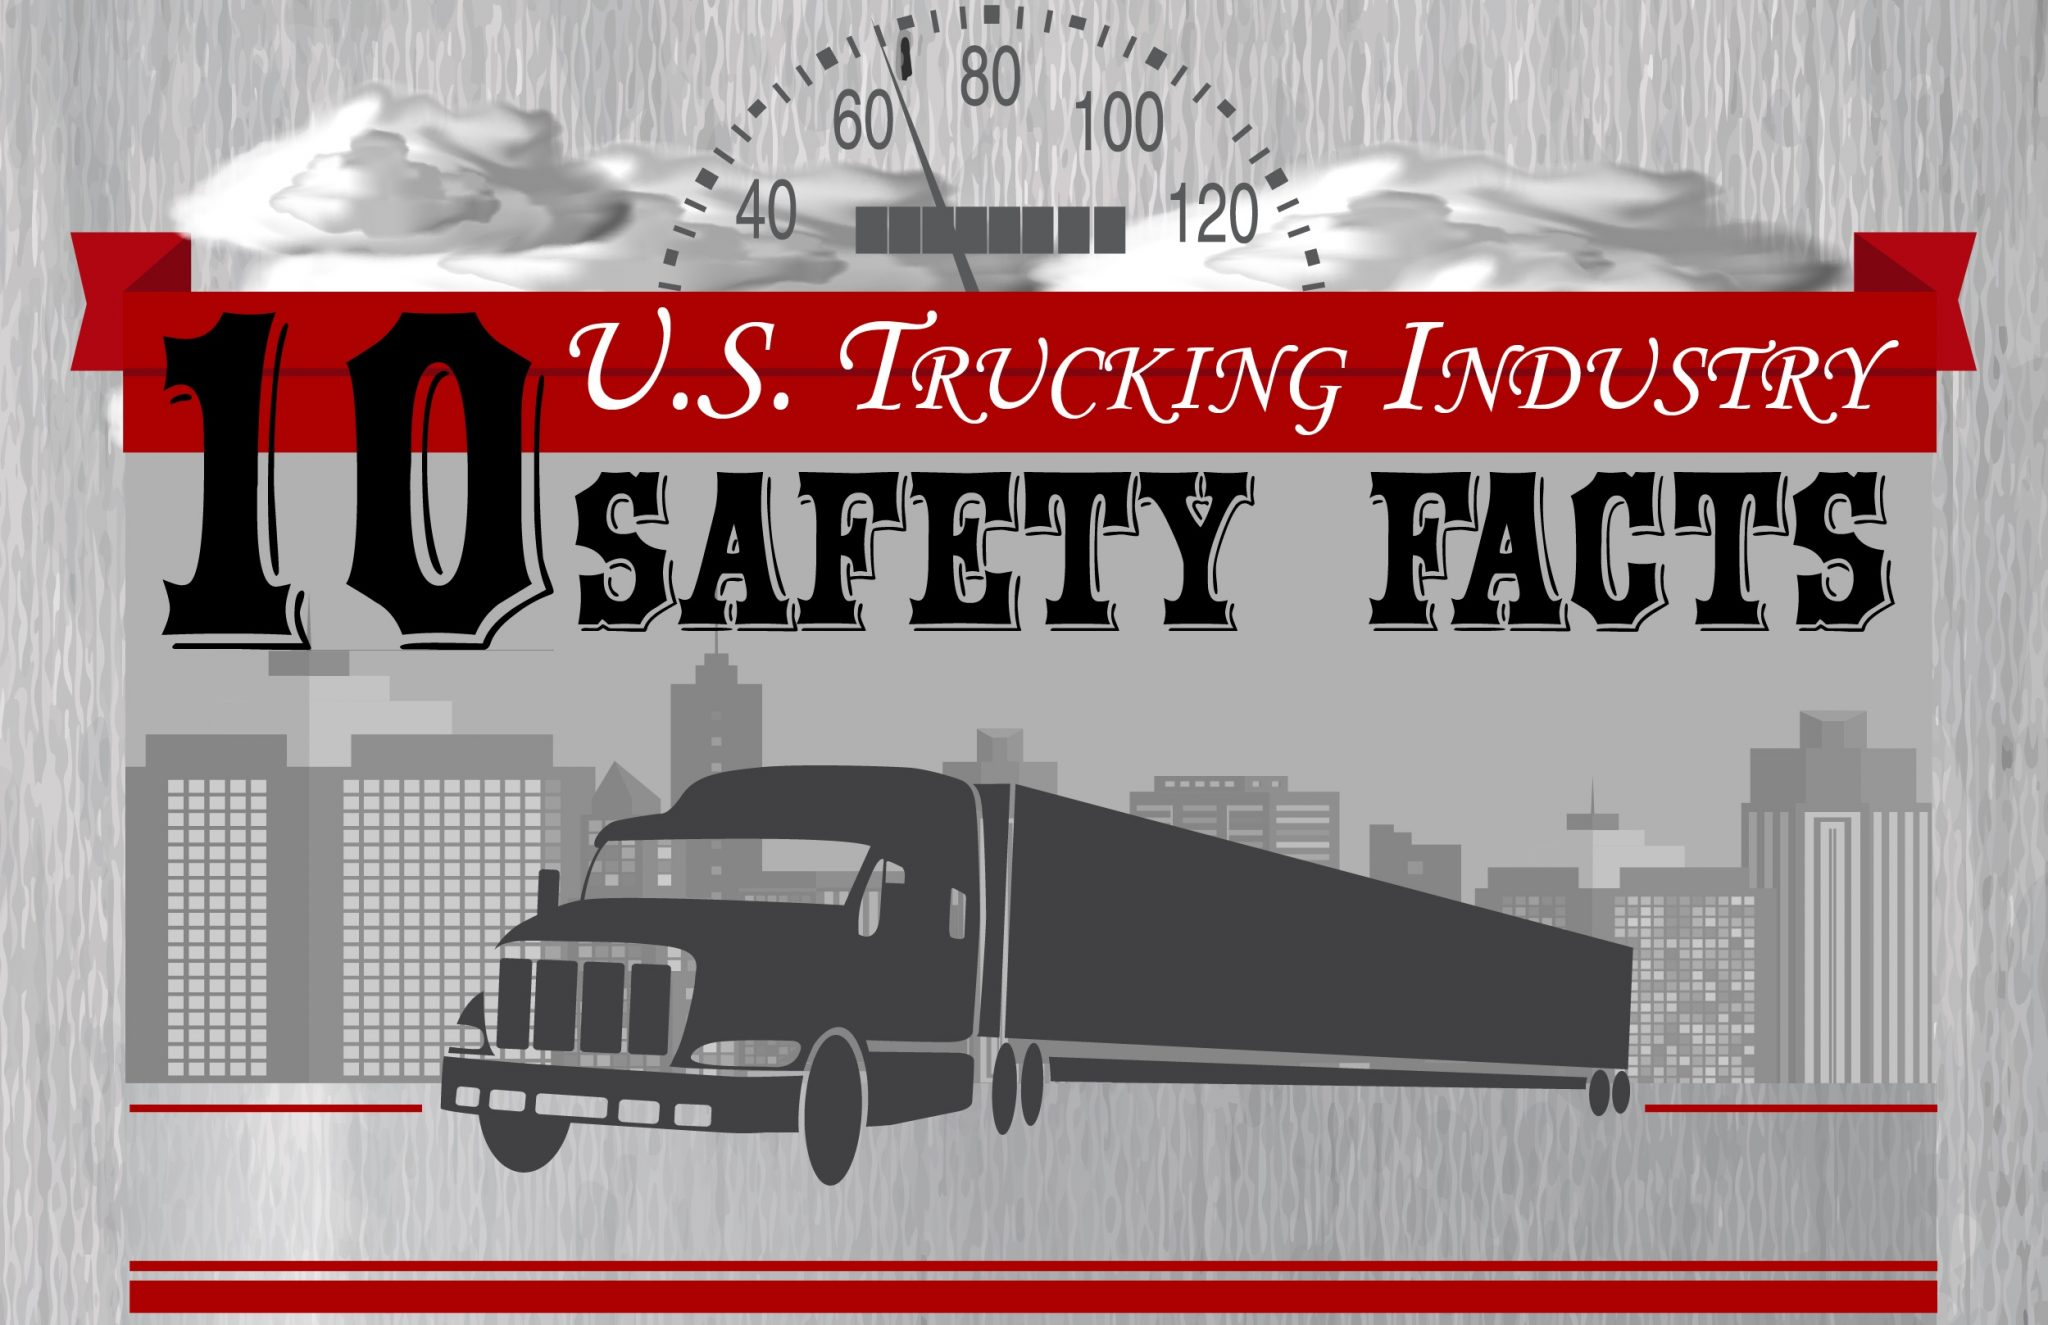 INFOGRAPHIC: 10 U.S. Trucking Industry Safety Facts